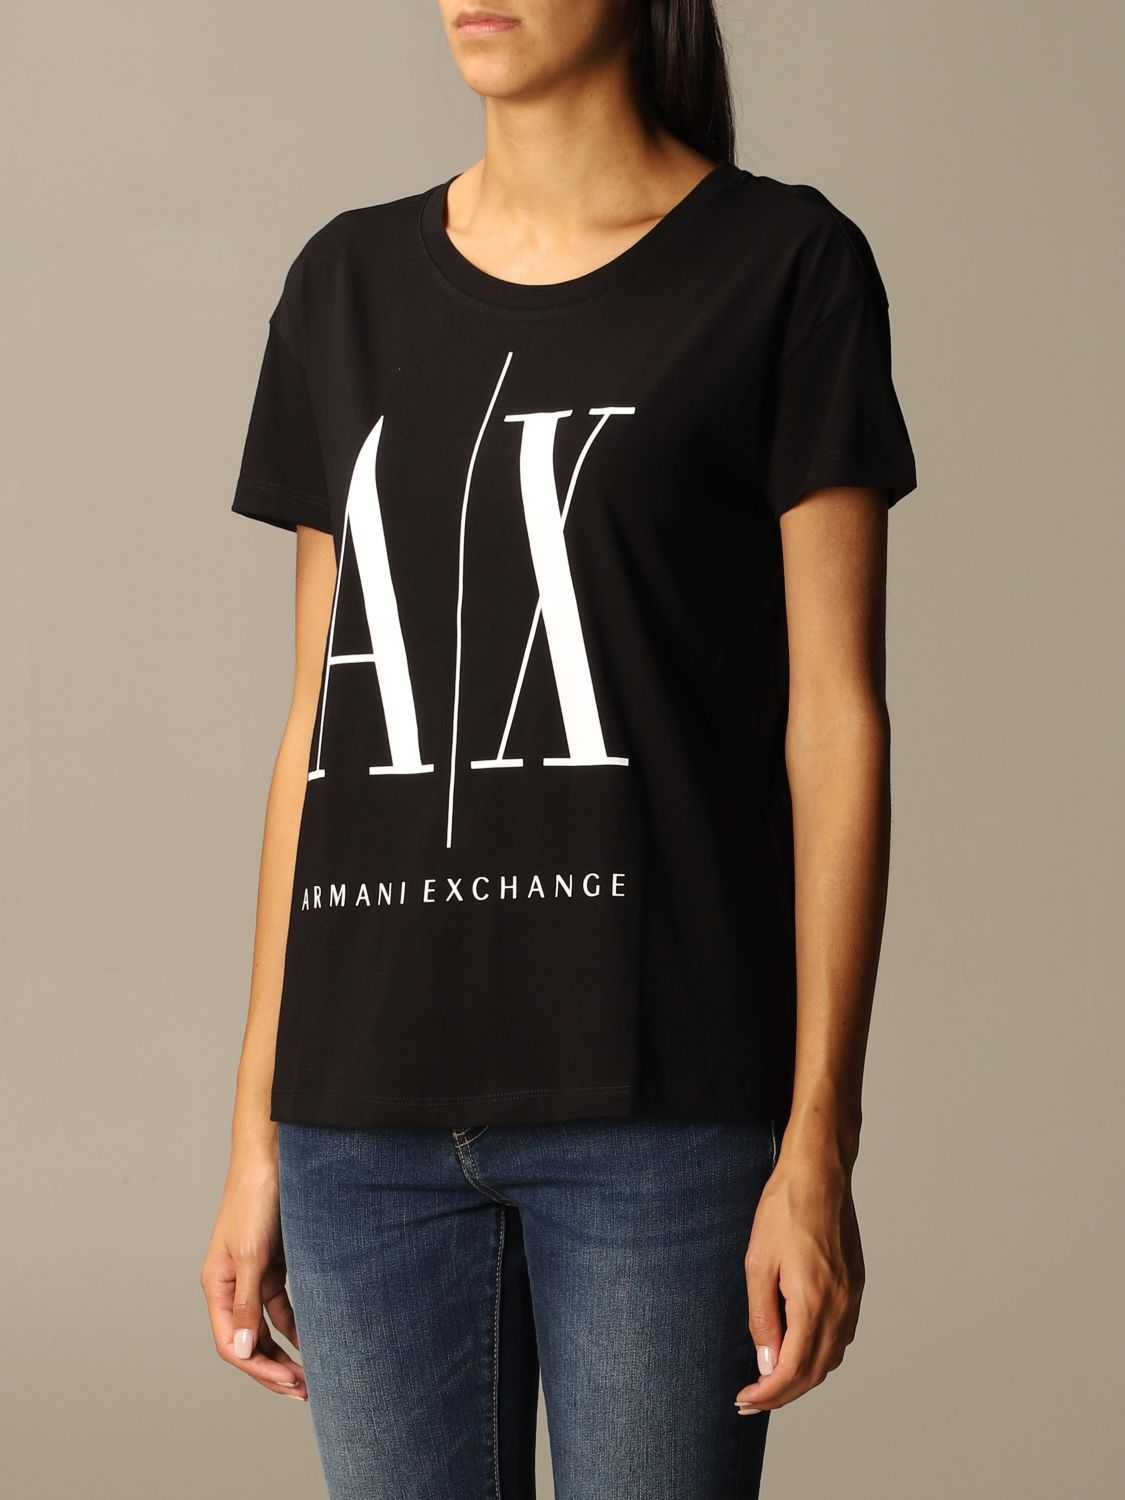 T-Shirt Armani Exchange: T-shirt women Armani Exchange black 3